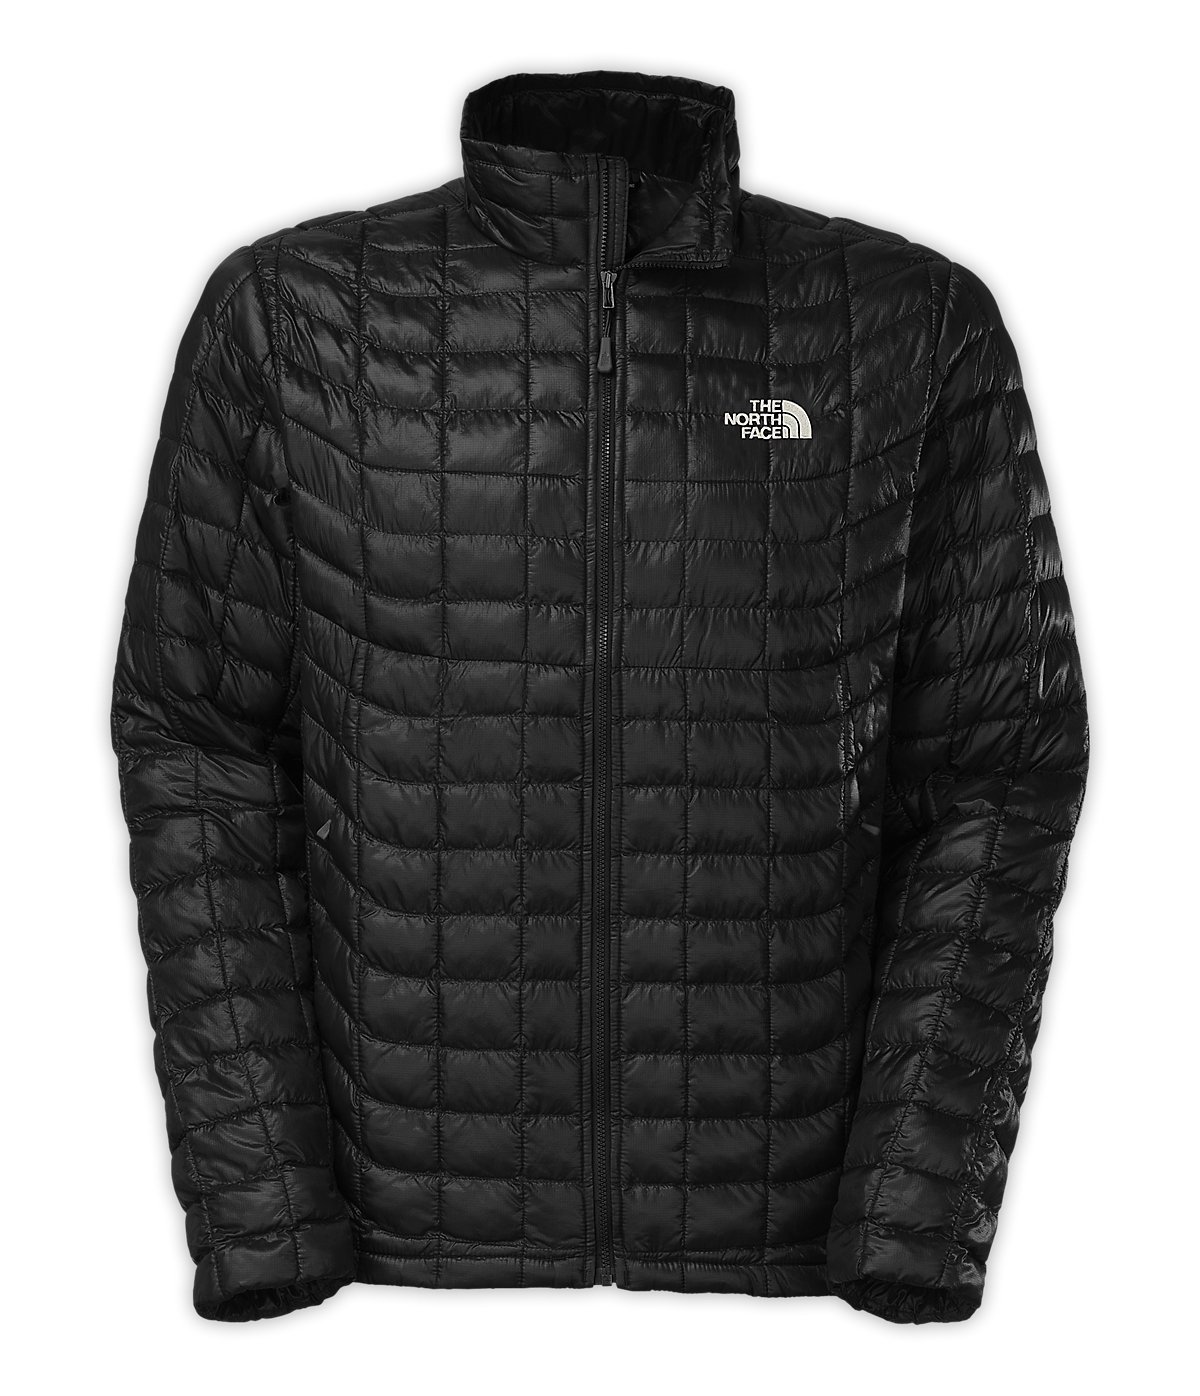 North Face Men's Thermoball Full Zip Jacket Review